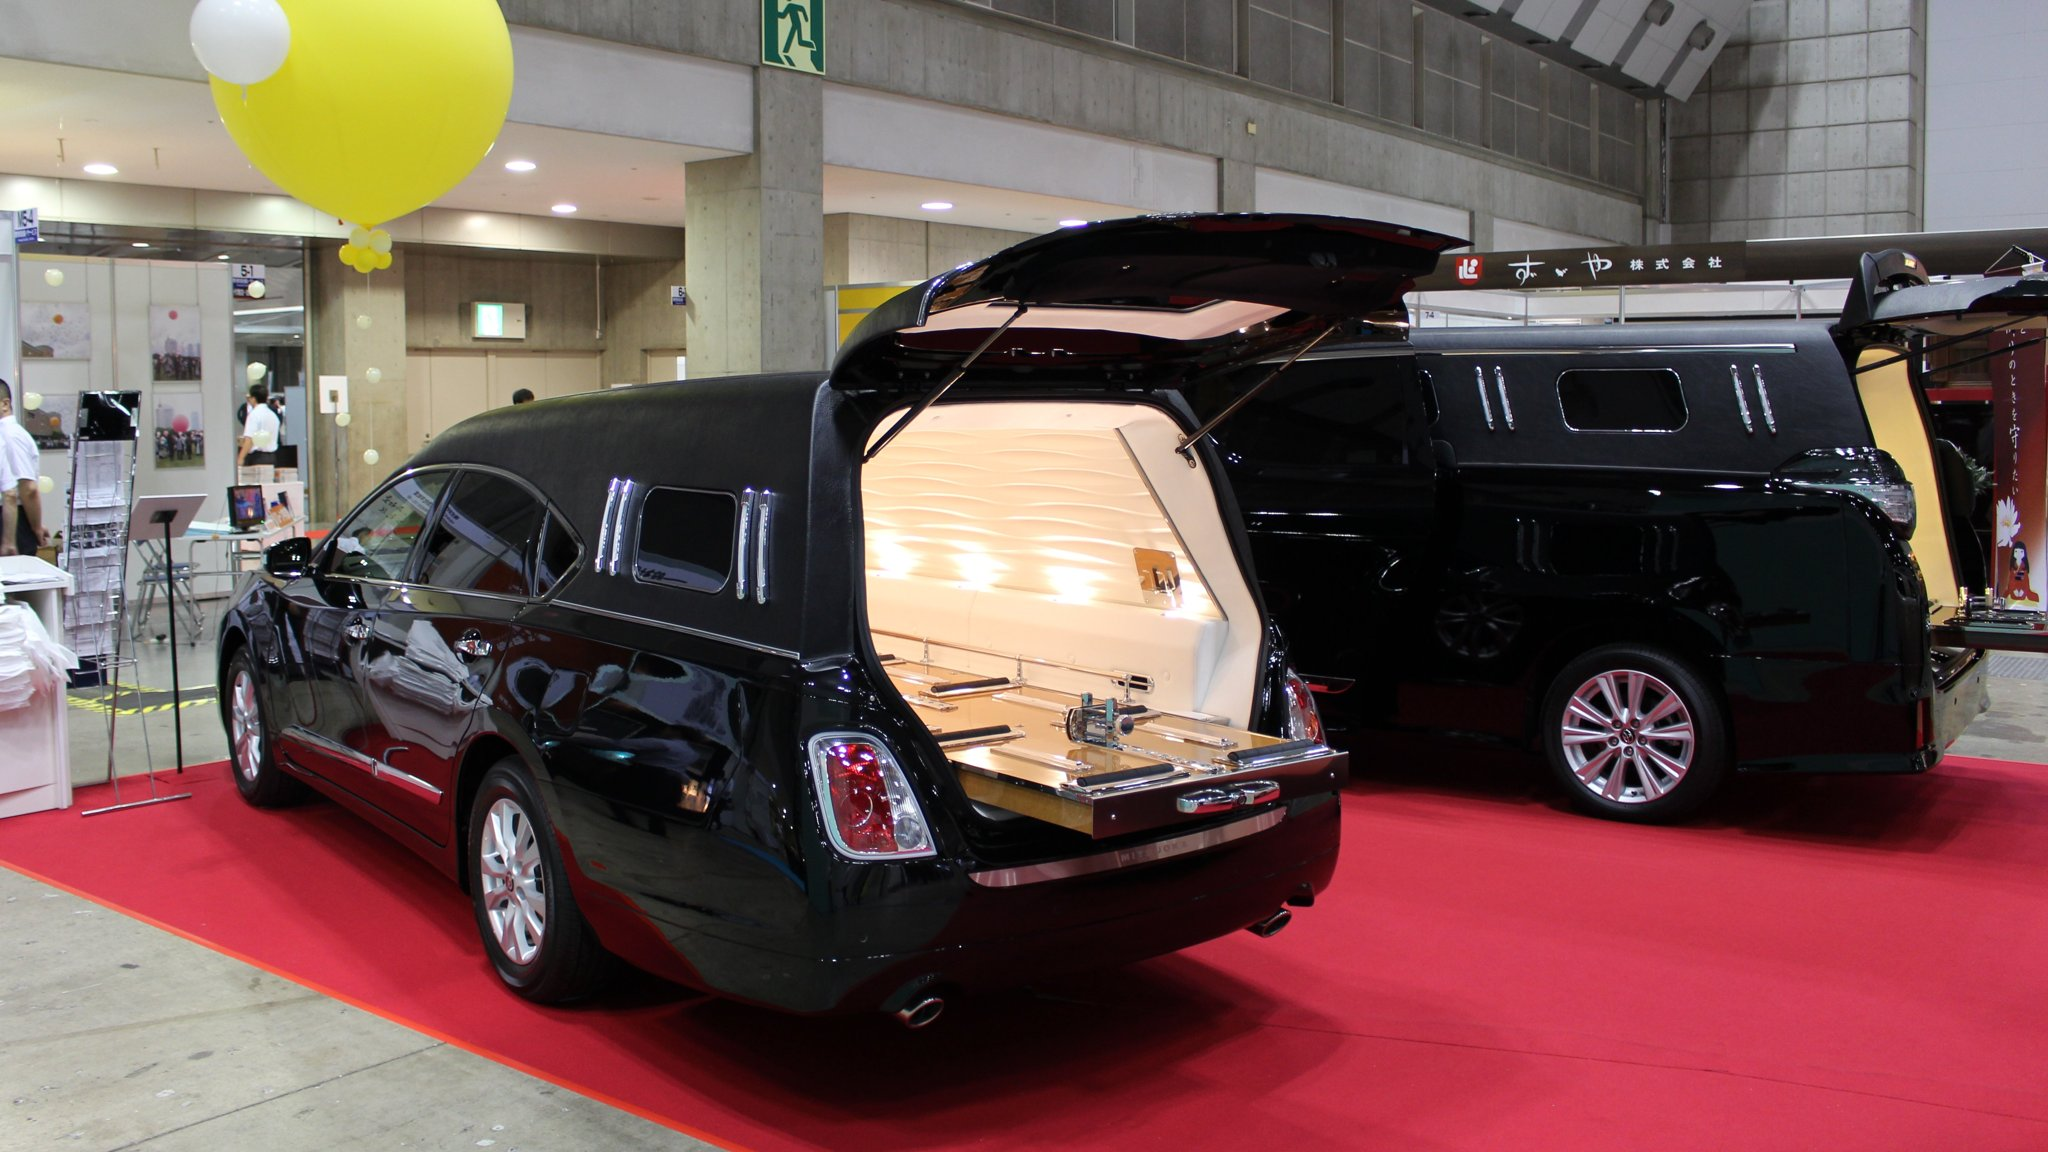 Japan's shrinking funeral market drives hearse makers